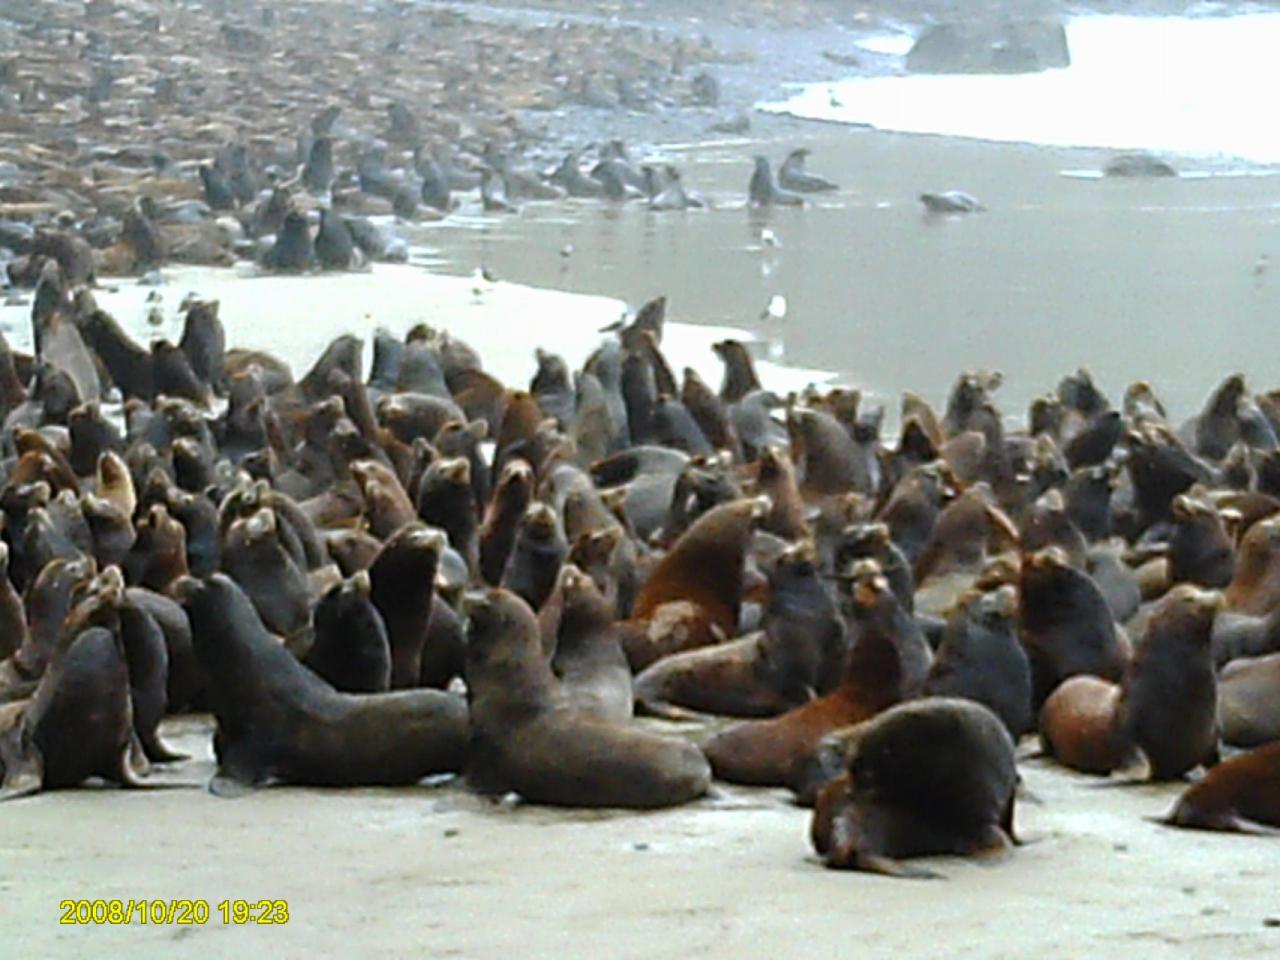 A ground-level view of the visiting population of sea lions in Fall of 2009